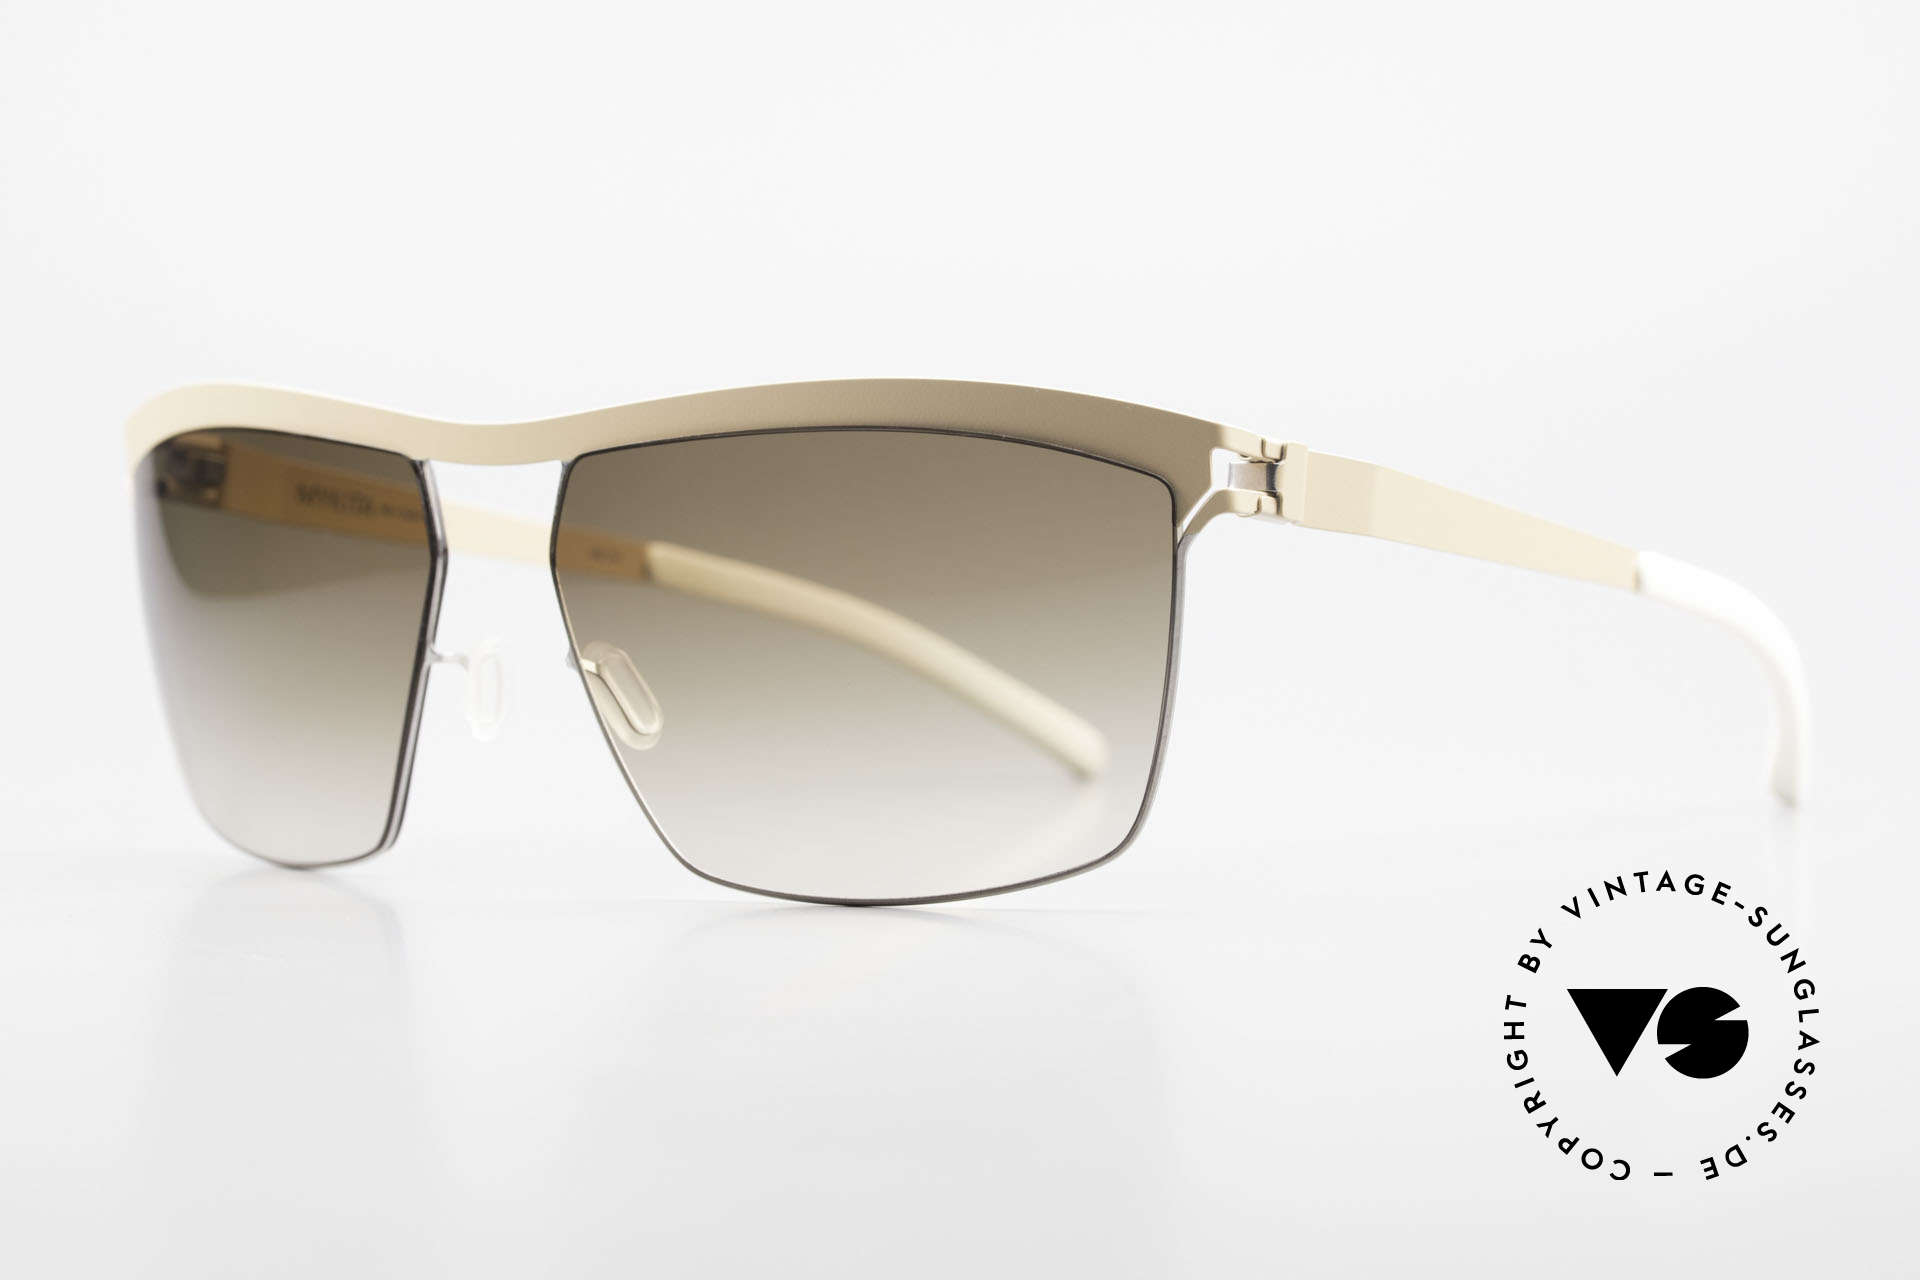 Mykita Tiago Designer Sunglasses Unisex, innovative and flexible metal frame = One size fits all!, Made for Men and Women